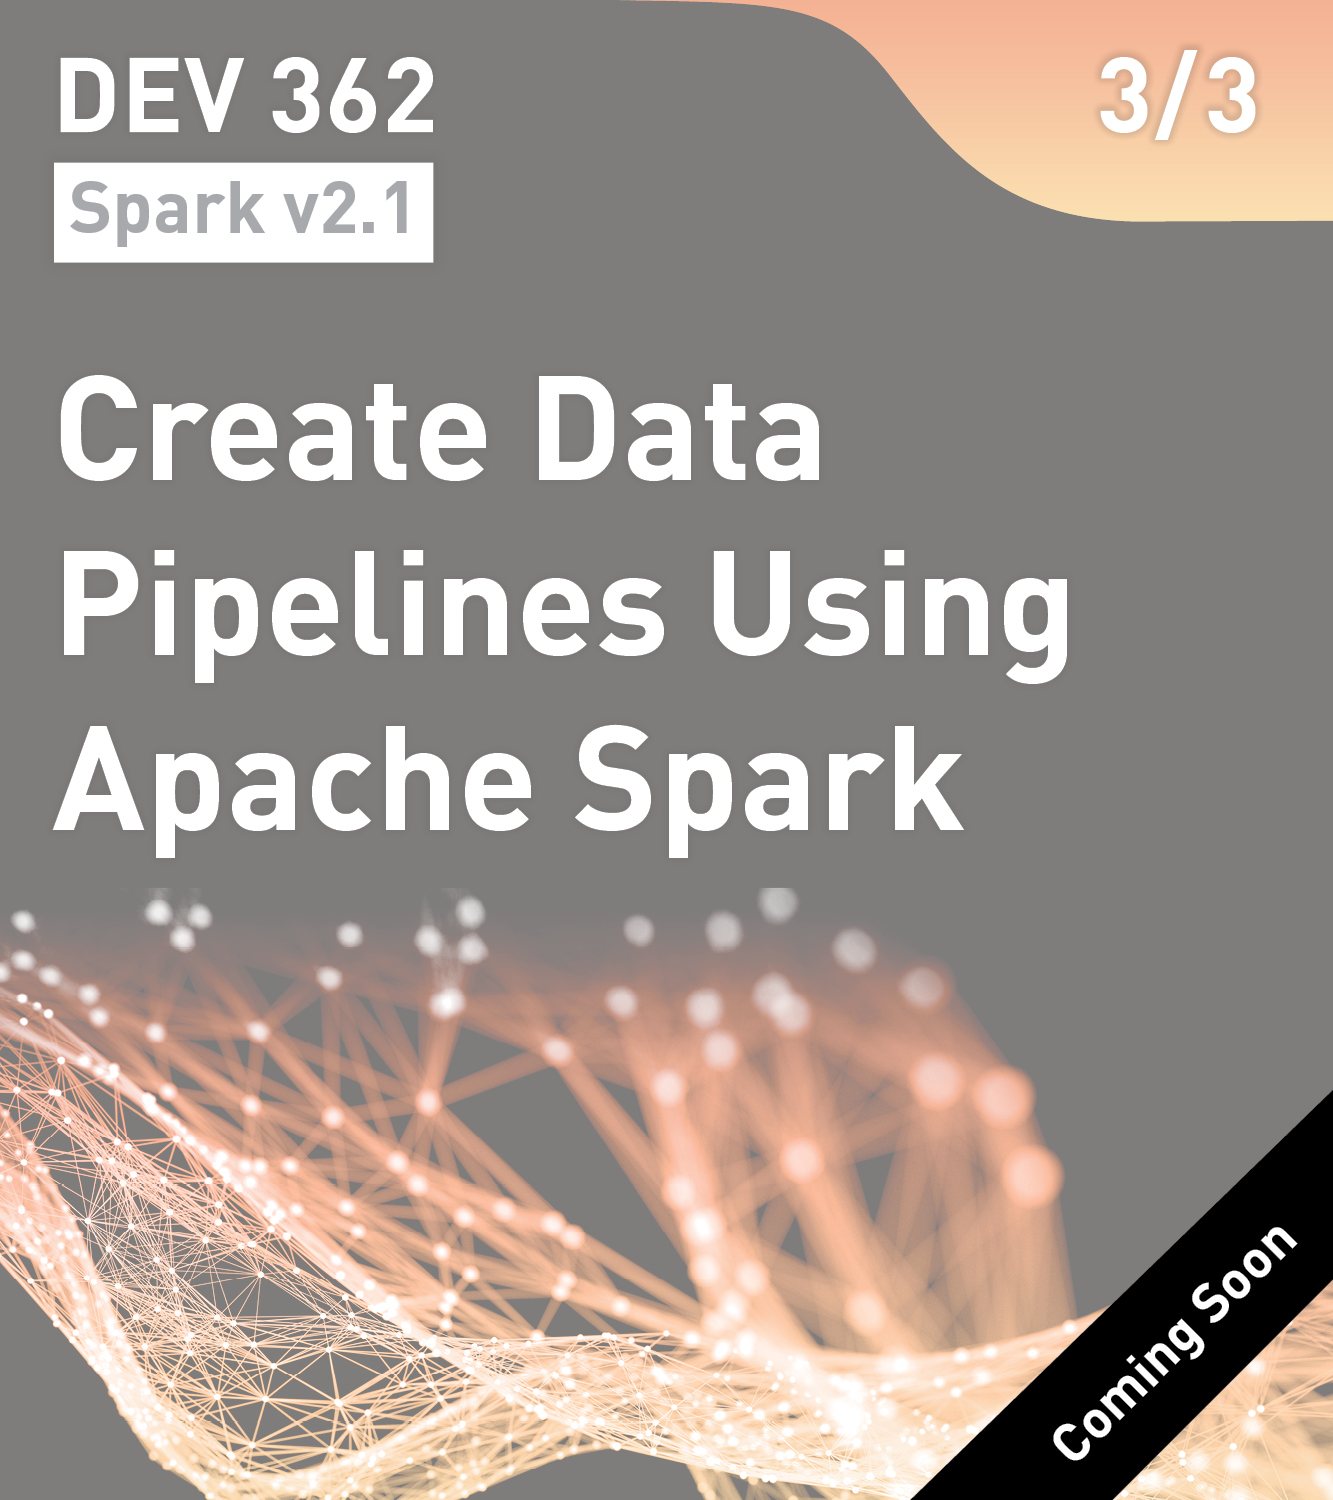 DEV 362 - Create Data Pipelines Using Apache Spark (Spark v2.1)